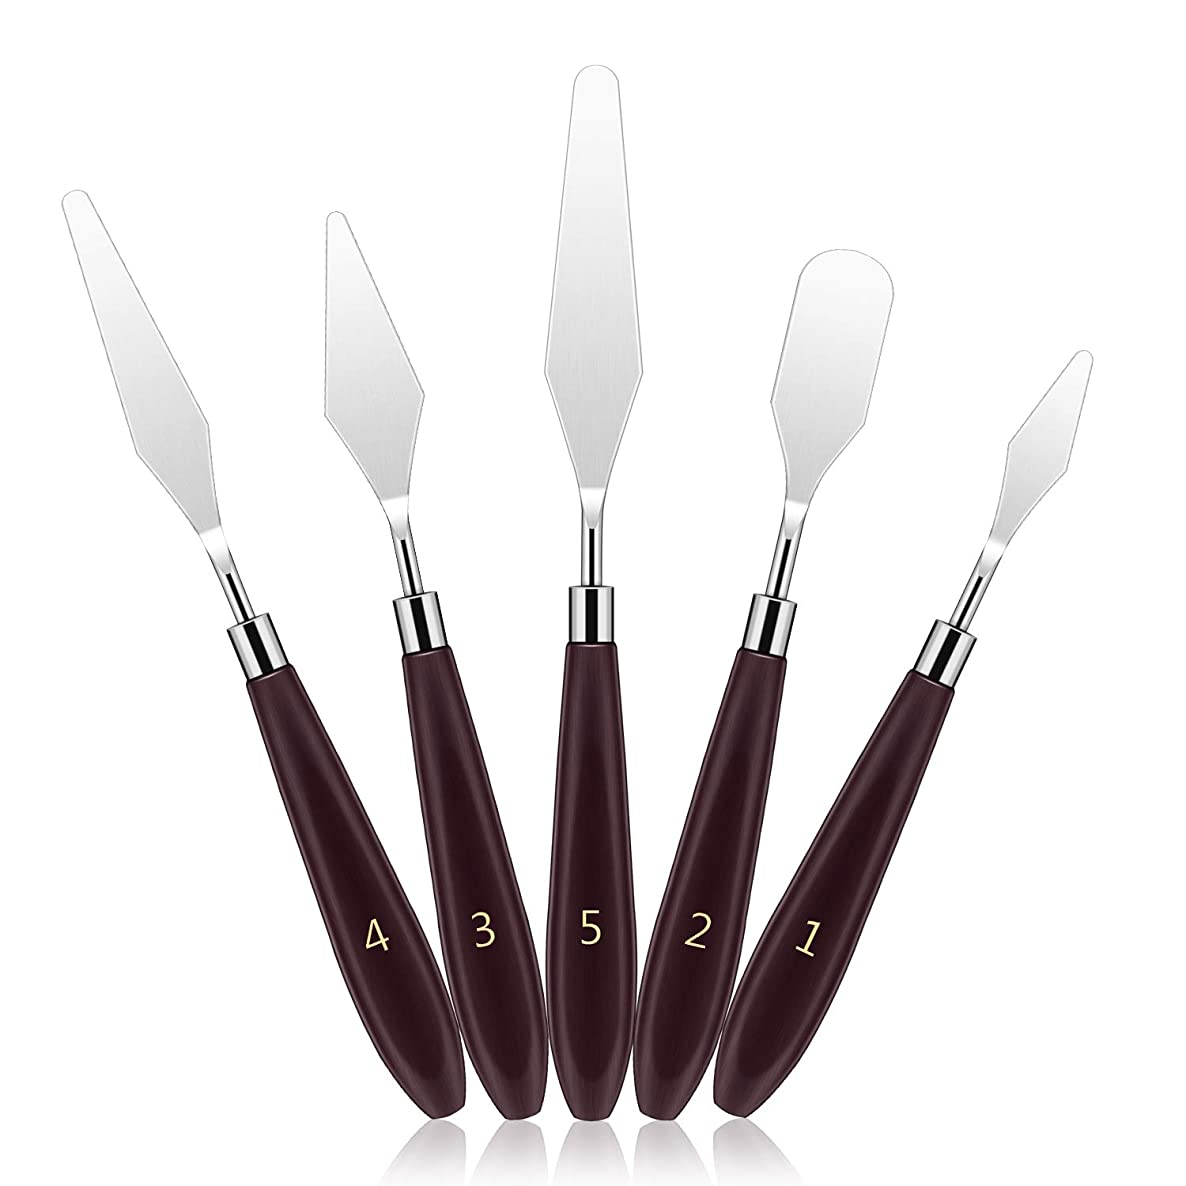 DROK 5Pcs Stainless Steel Paint Scraper, Wooden Handle Palette Painting Knife Set, Watercolor Oil Acrylic Paint Spatula, Metal Art Tools, Oil Painting Accessories for Color Mixing